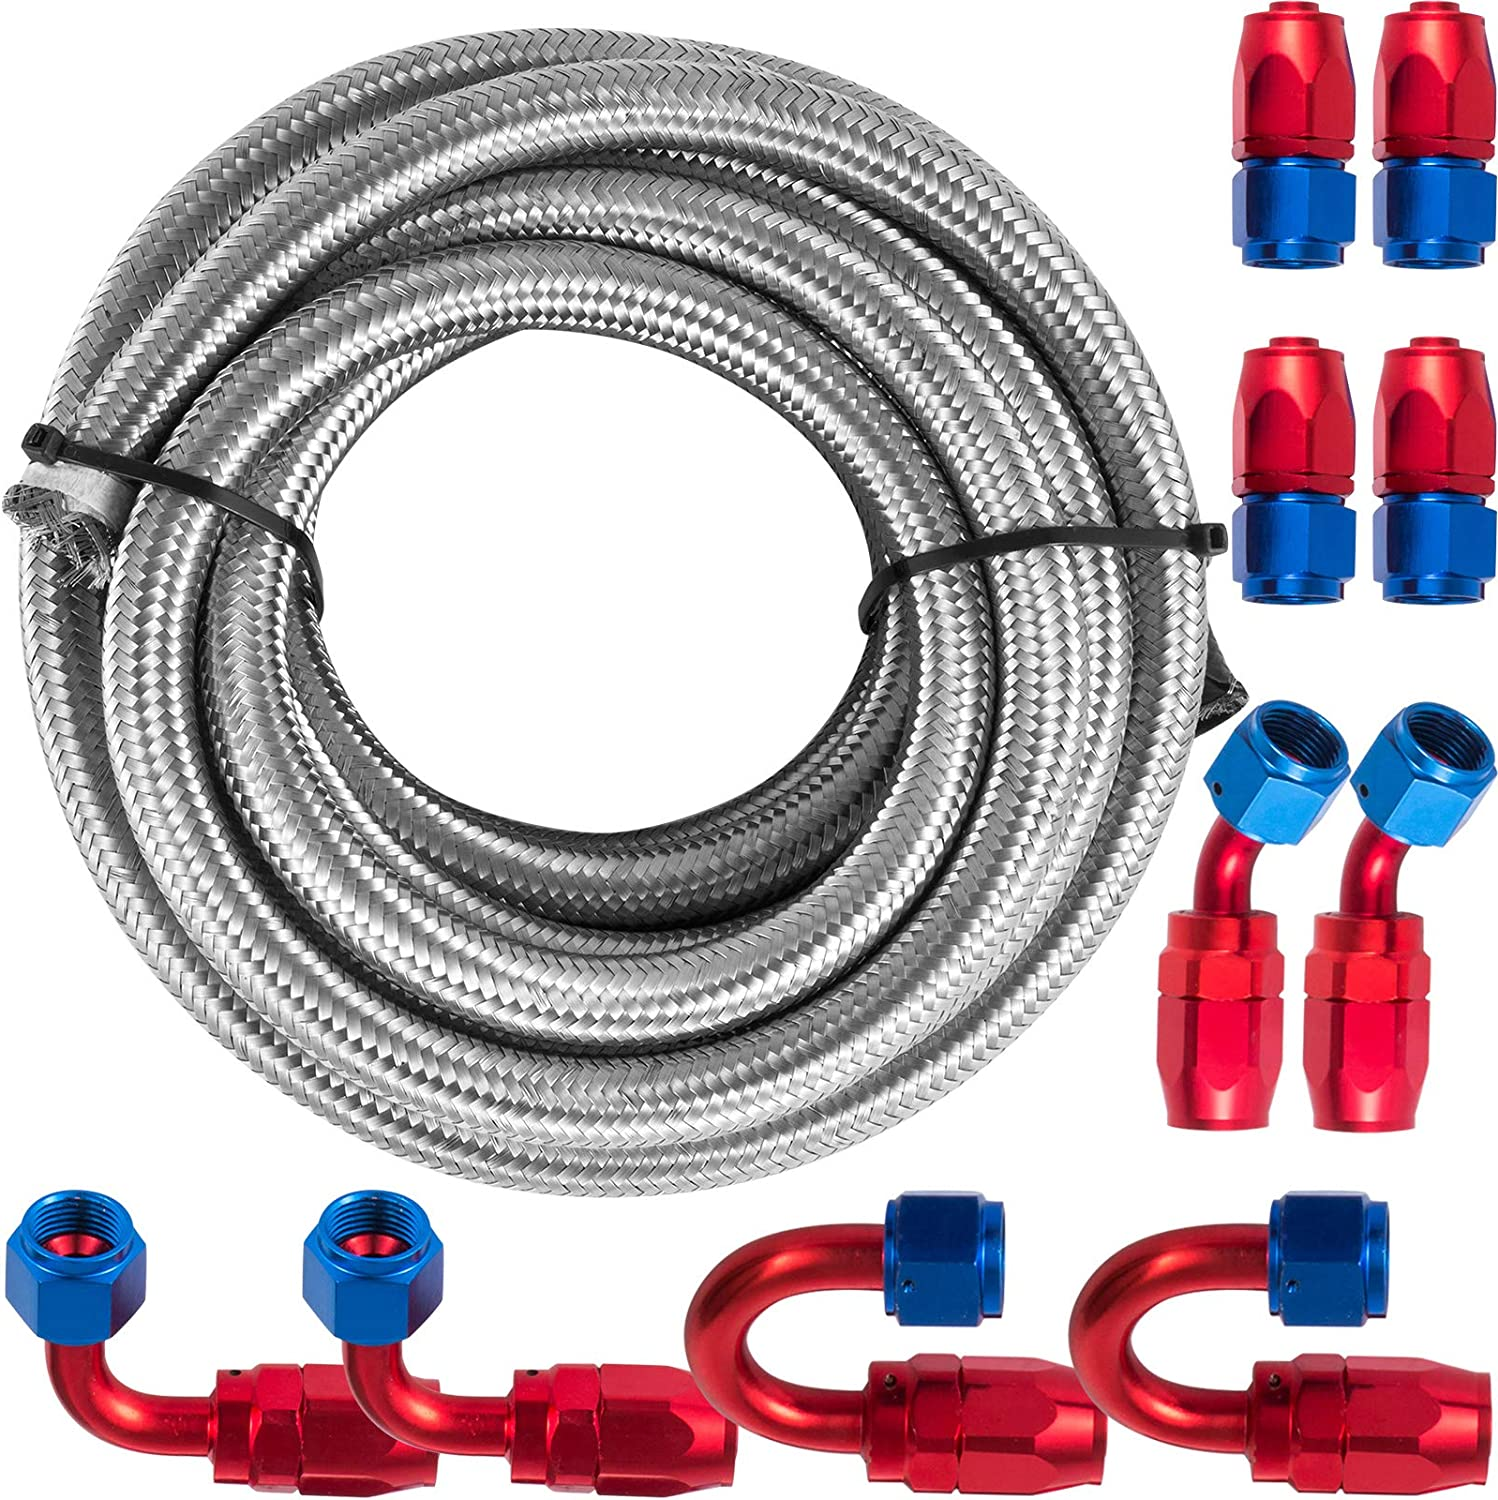 Mophorn AN8 20Ft Fuel Line Hose Stainless Steel Kit Brai - Easy-to-use shop Nylon